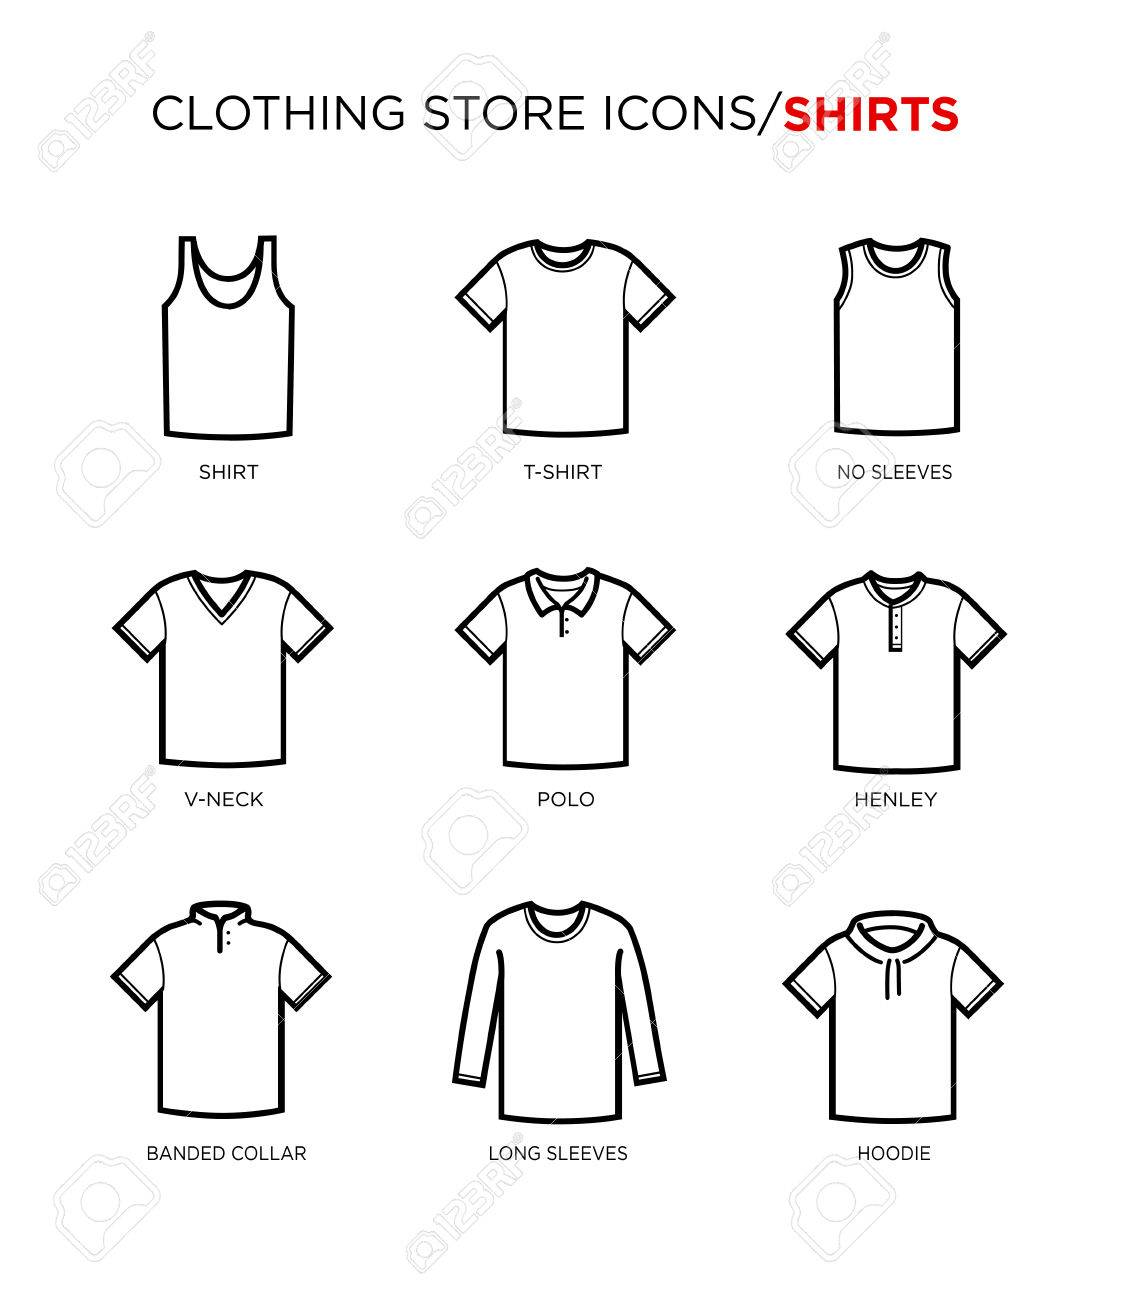 t shirt icon set clothing store different styles royalty free cliparts vectors and stock illustration image 56648424 t shirt icon set clothing store different styles